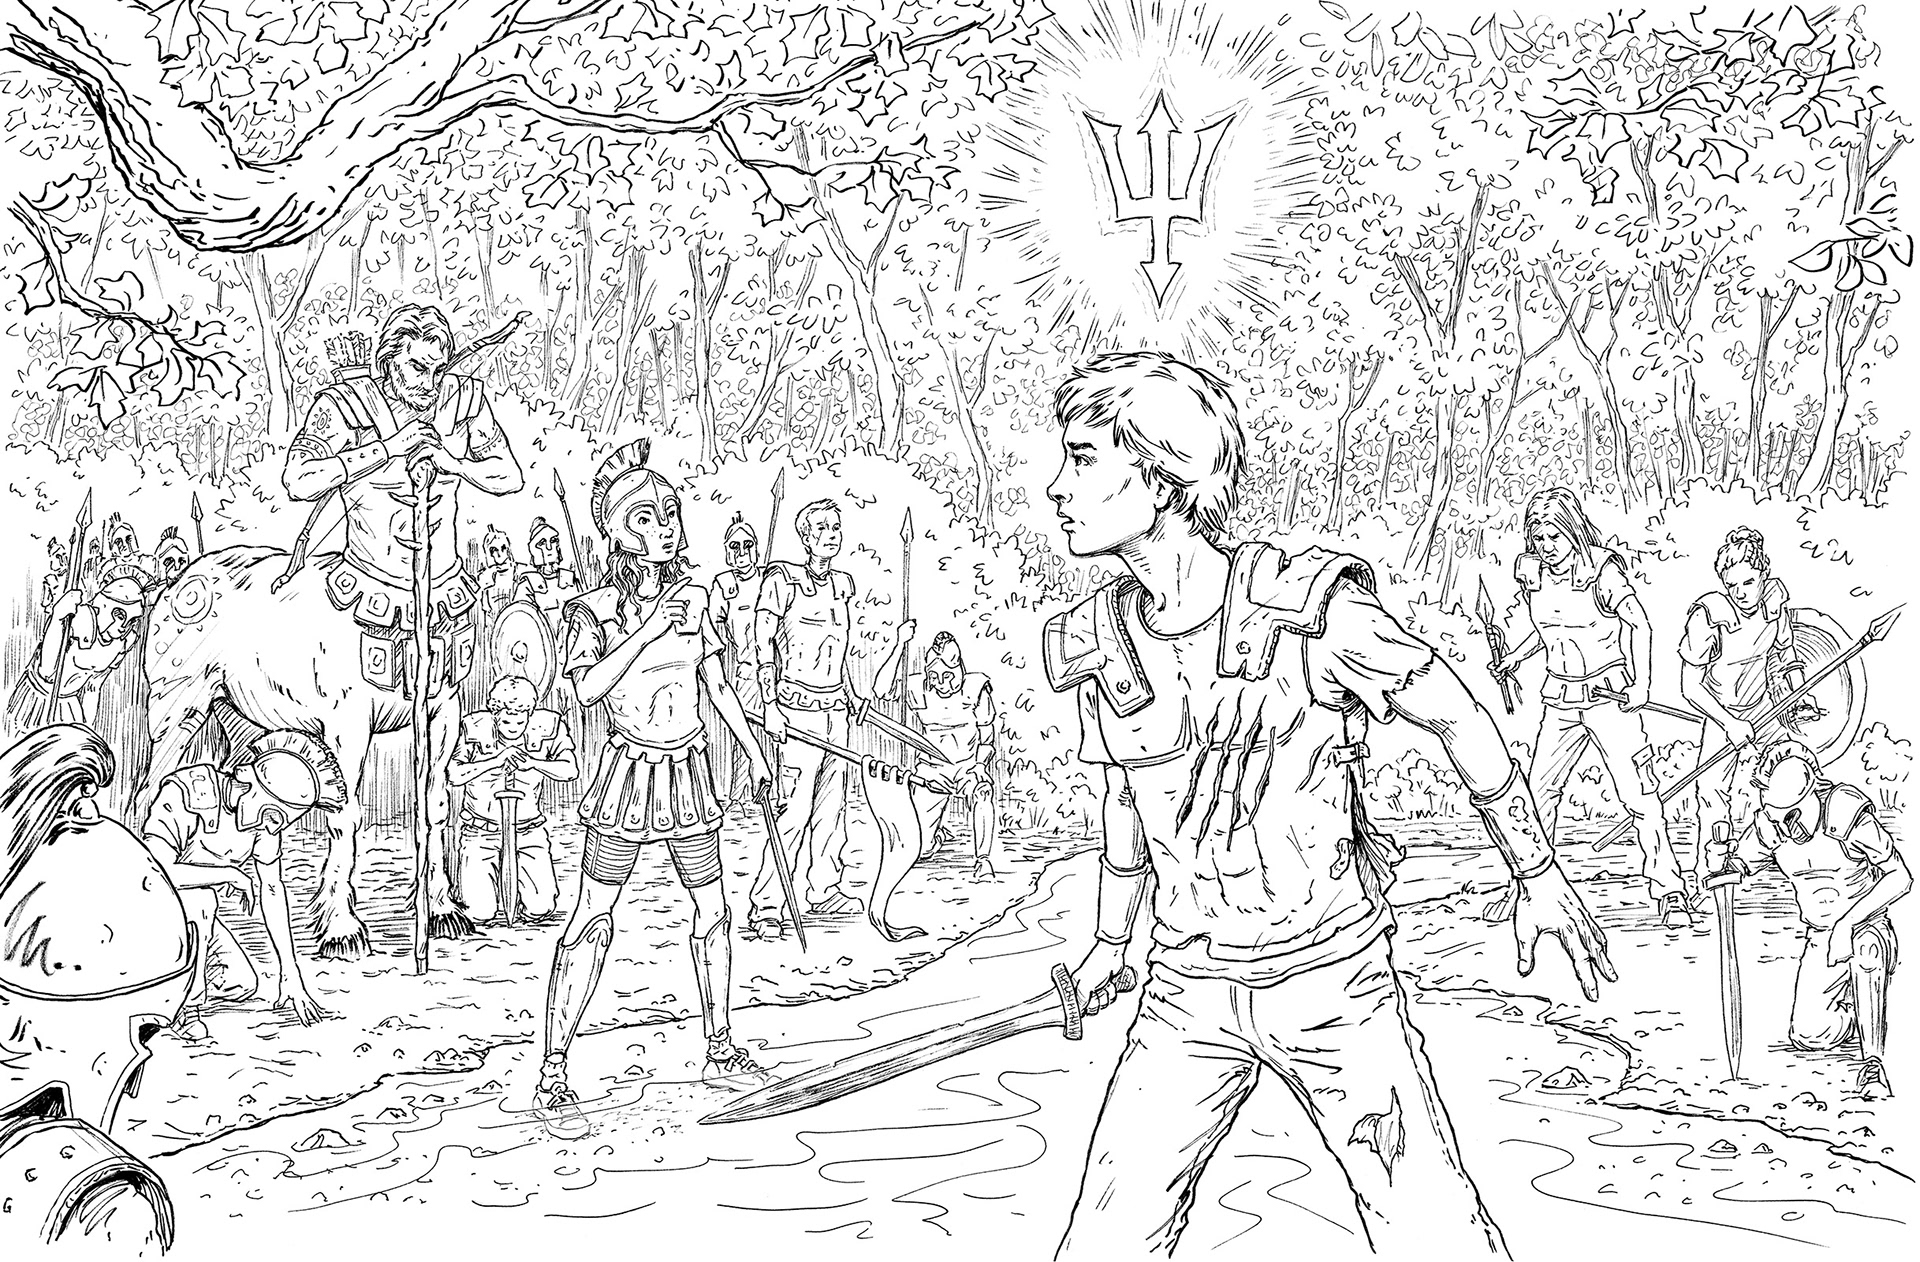 Poseidon Percy Jackson Coloring Pages - Worksheet & Coloring Pages